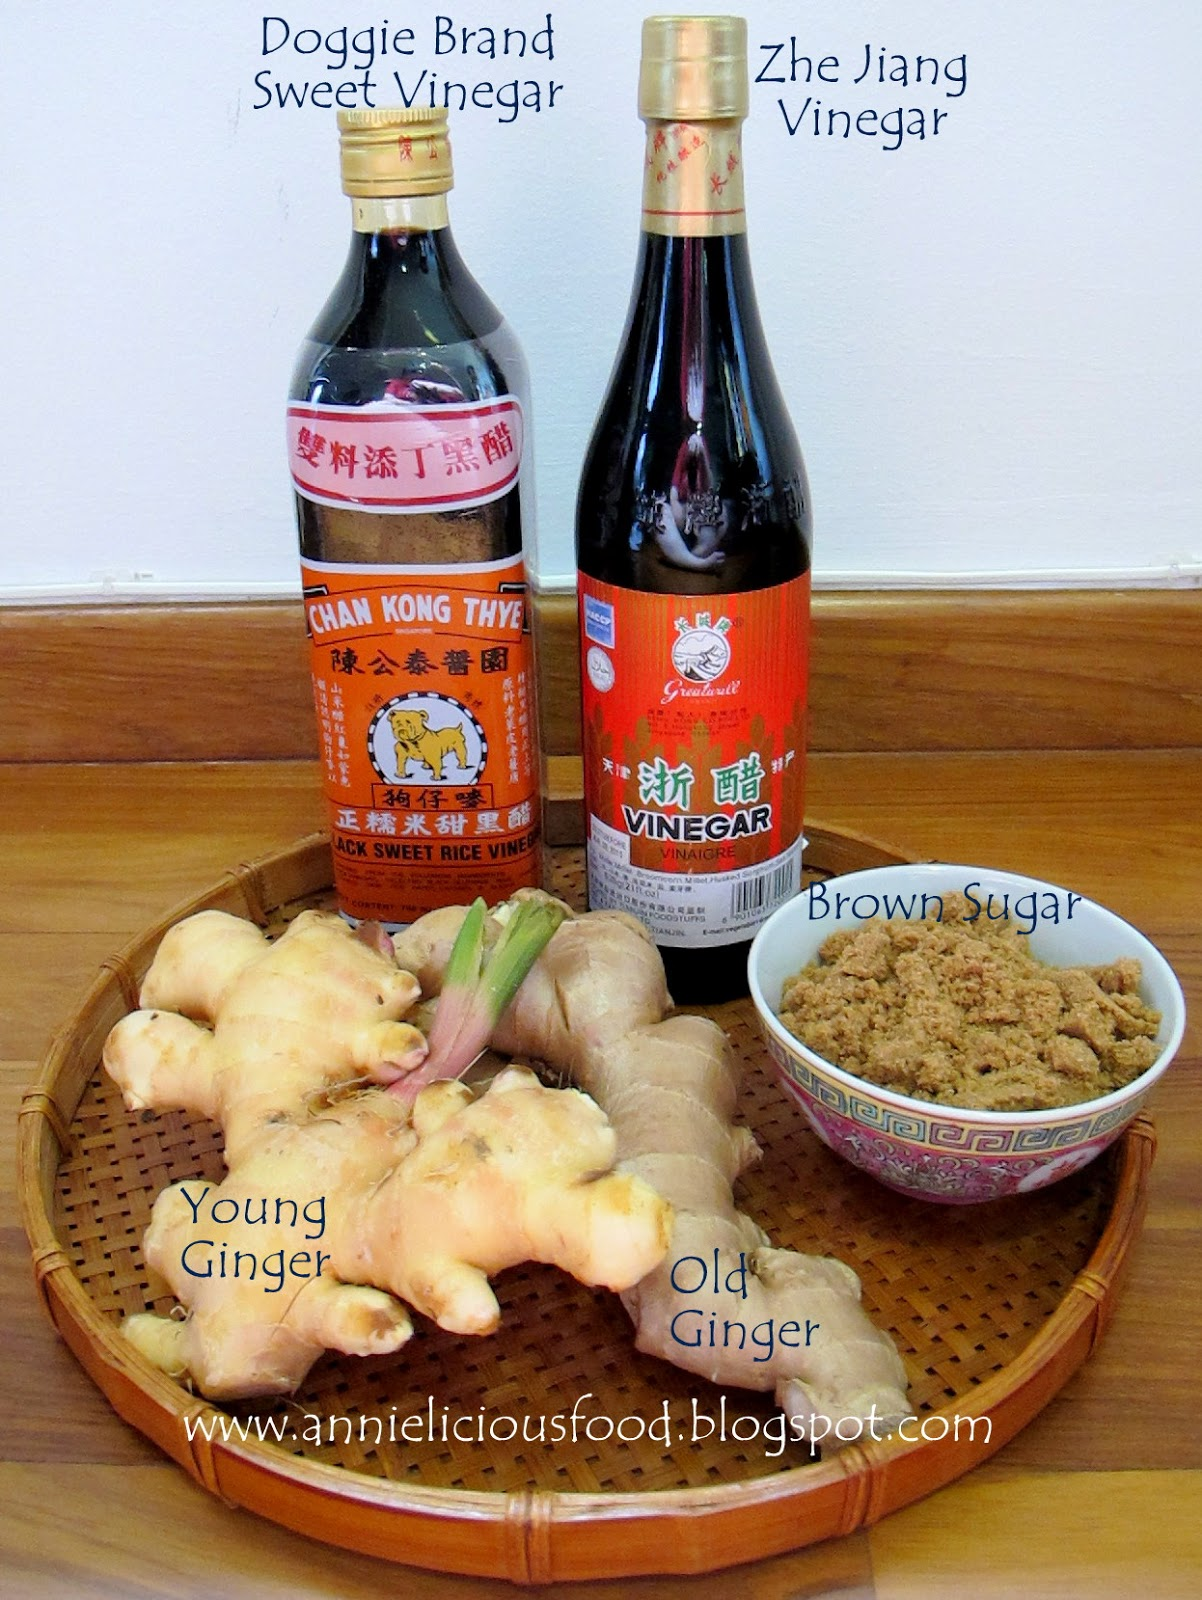 Annielicious food mdm chais pig trotter in vinegar with ginger annielicious food mdm chais pig trotter in vinegar with ginger forumfinder Choice Image